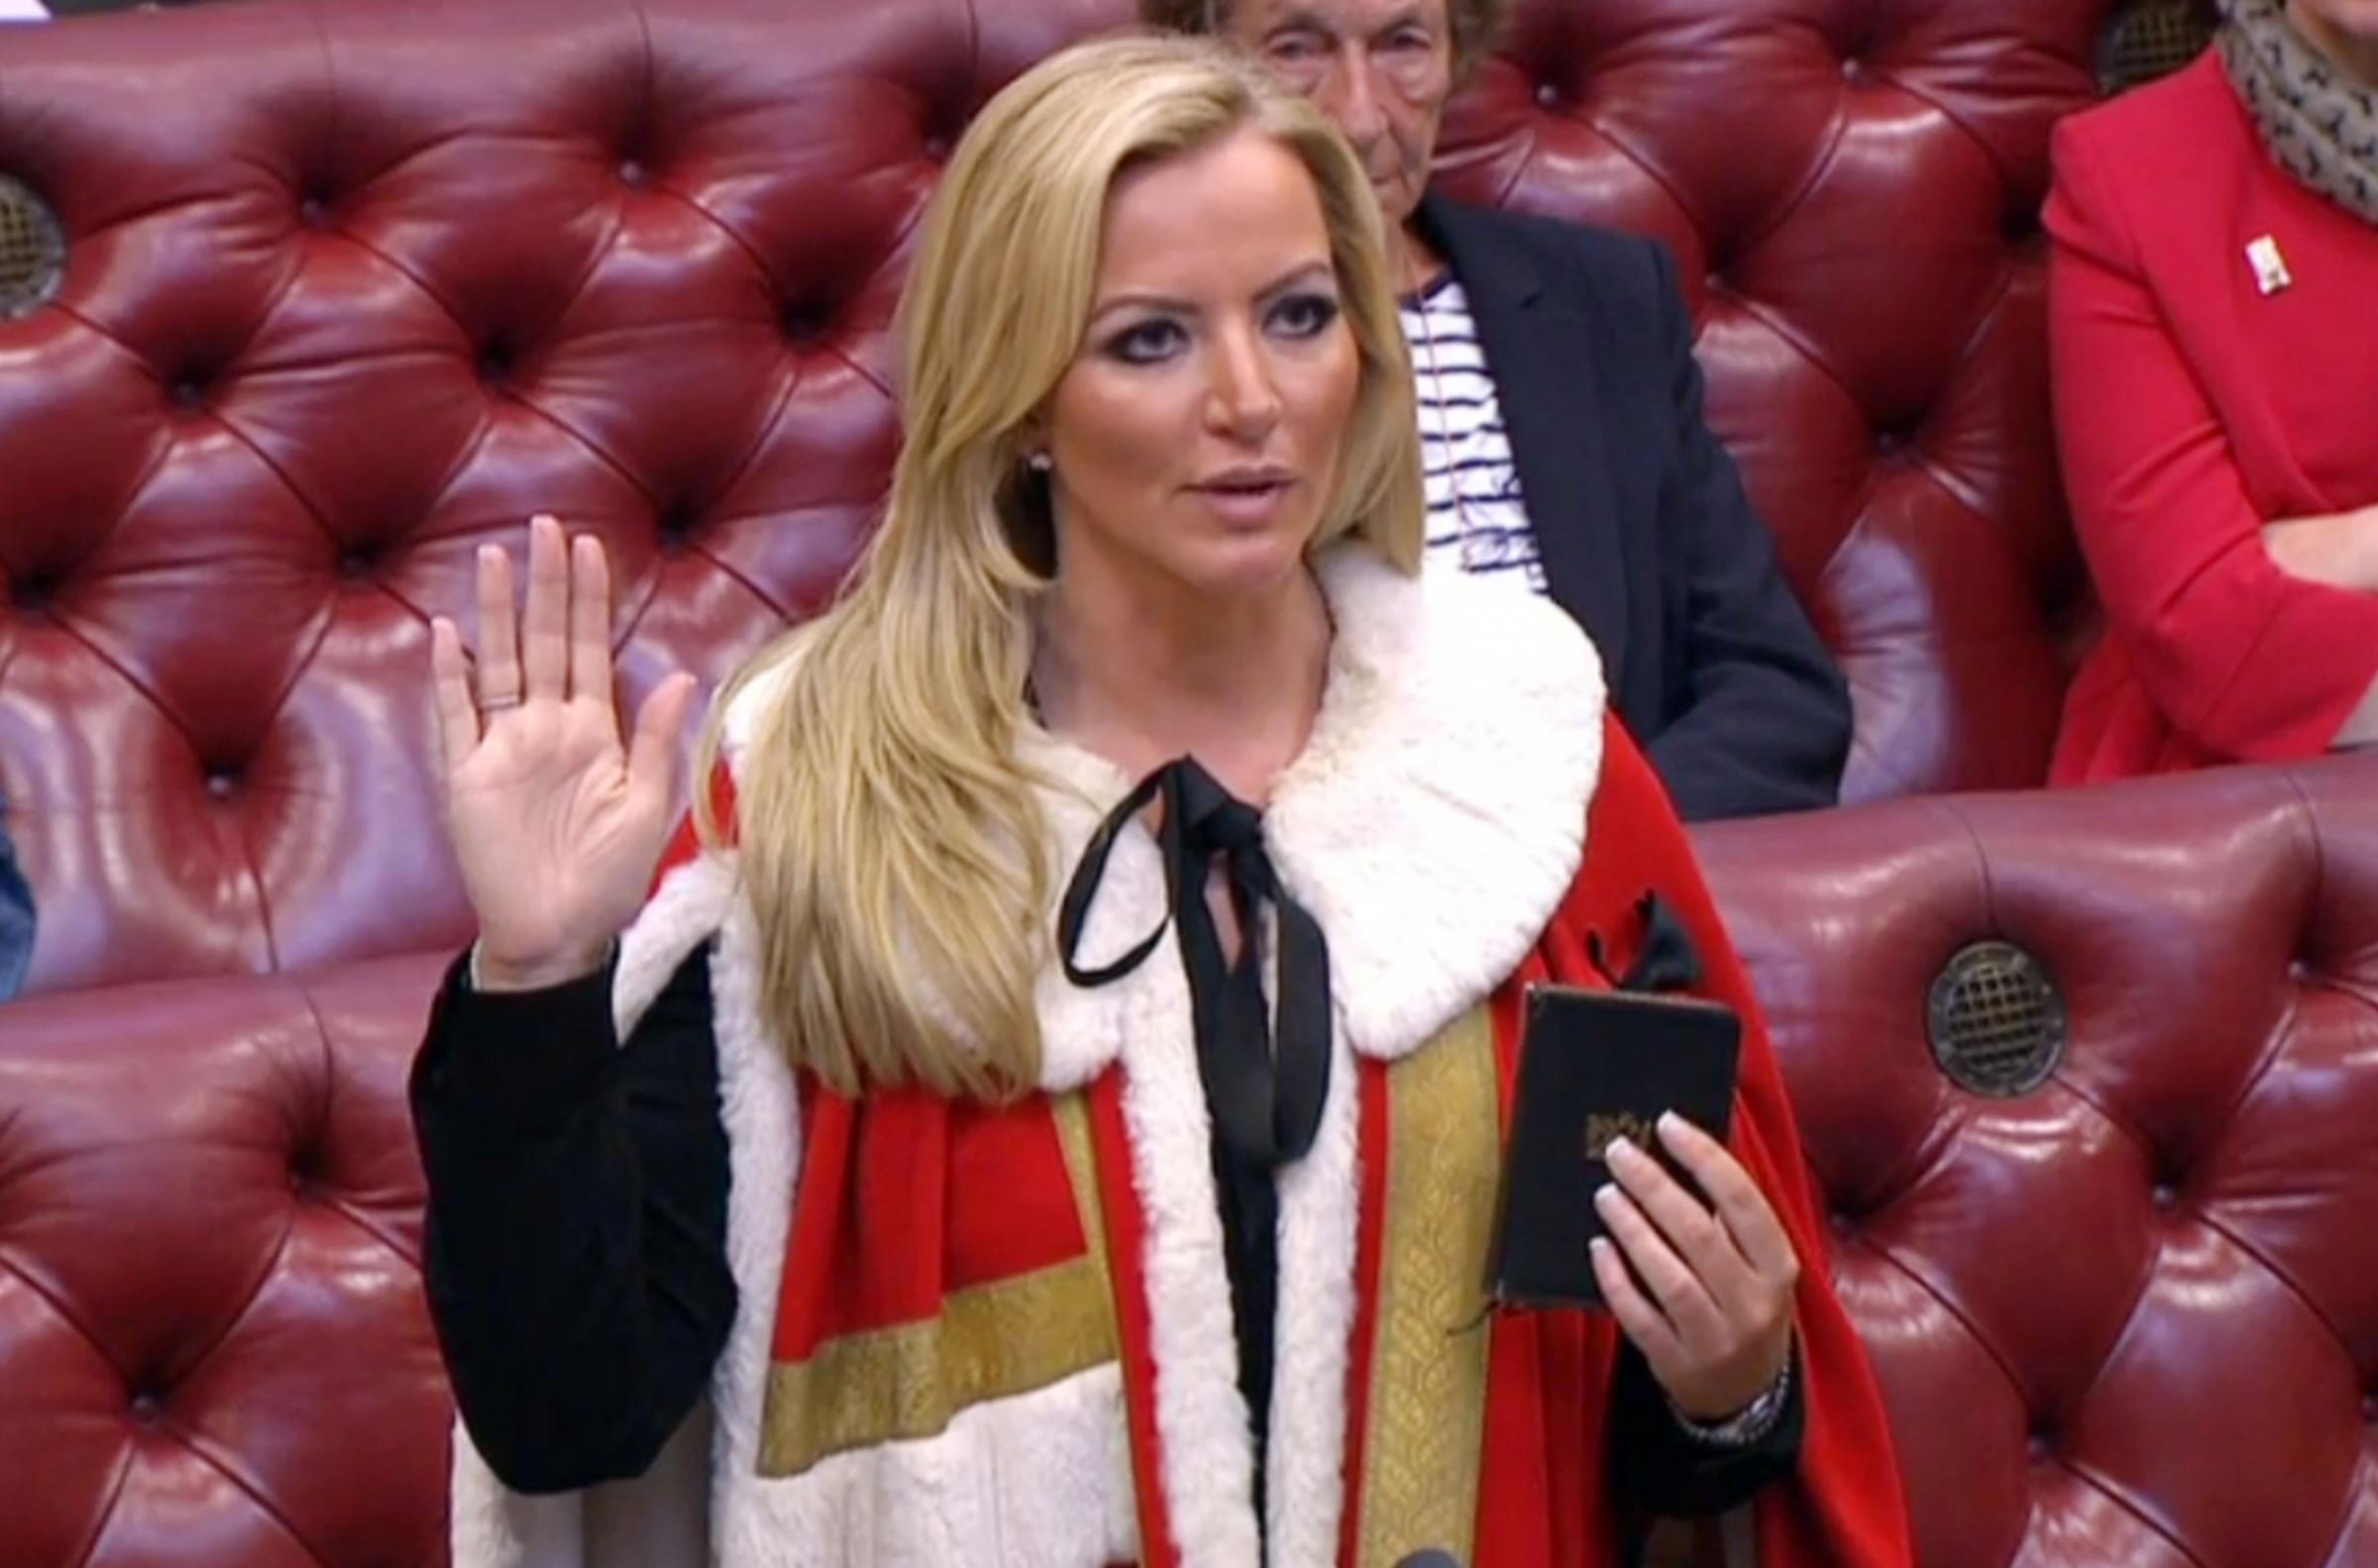 Michelle Mone's daughter blasted over 'poverty safari' TV show appearance